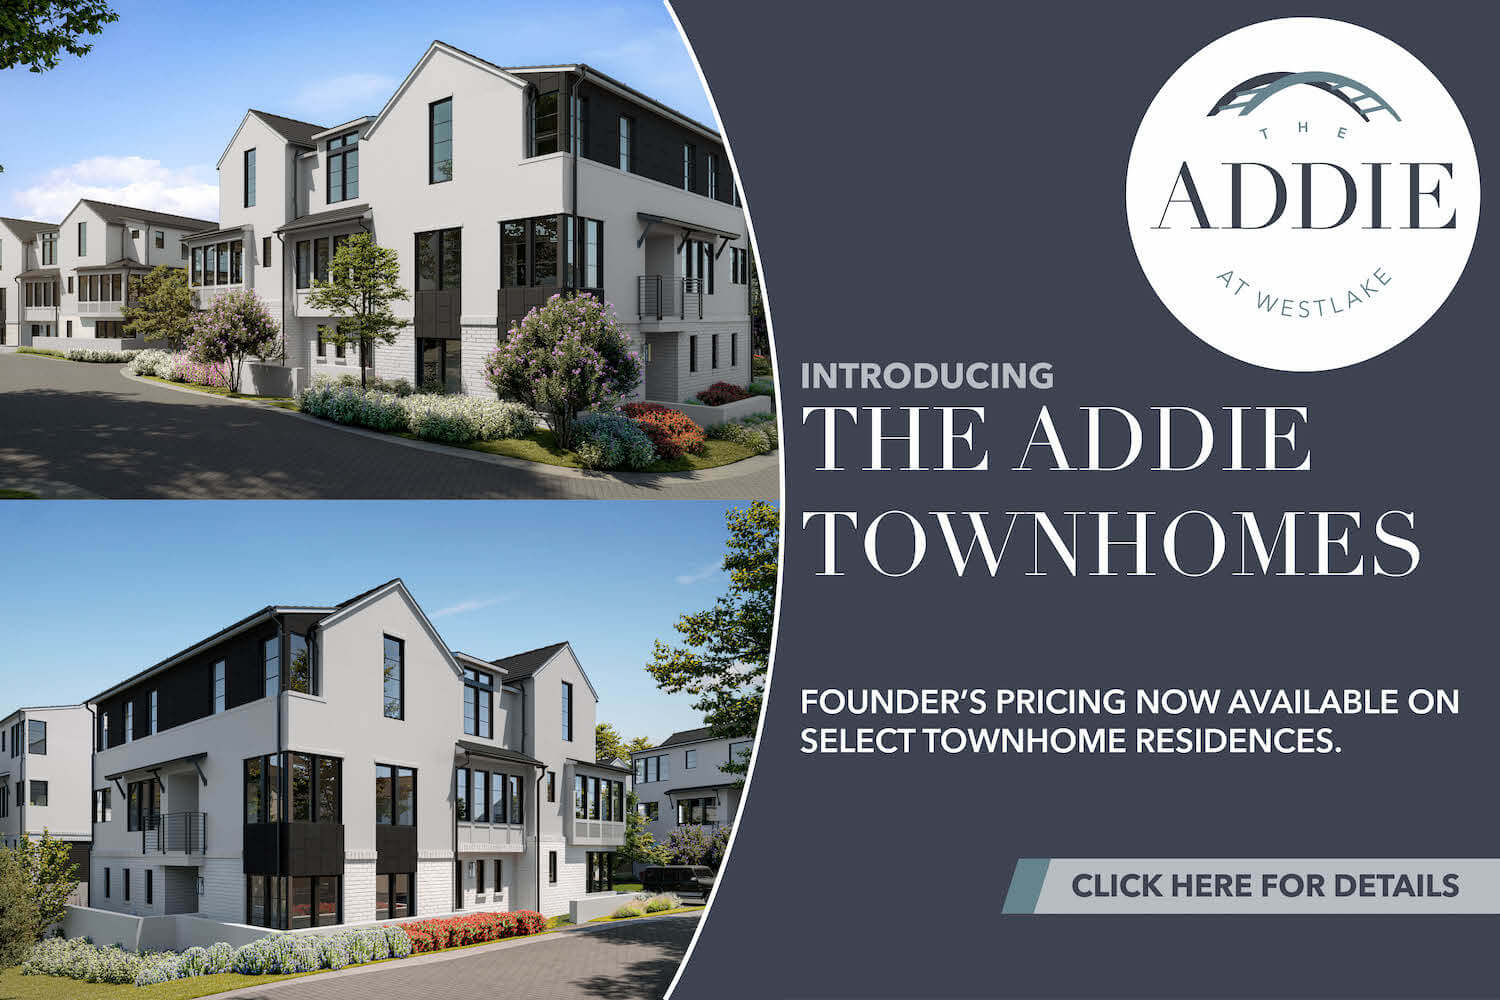 The Addie Townhomes